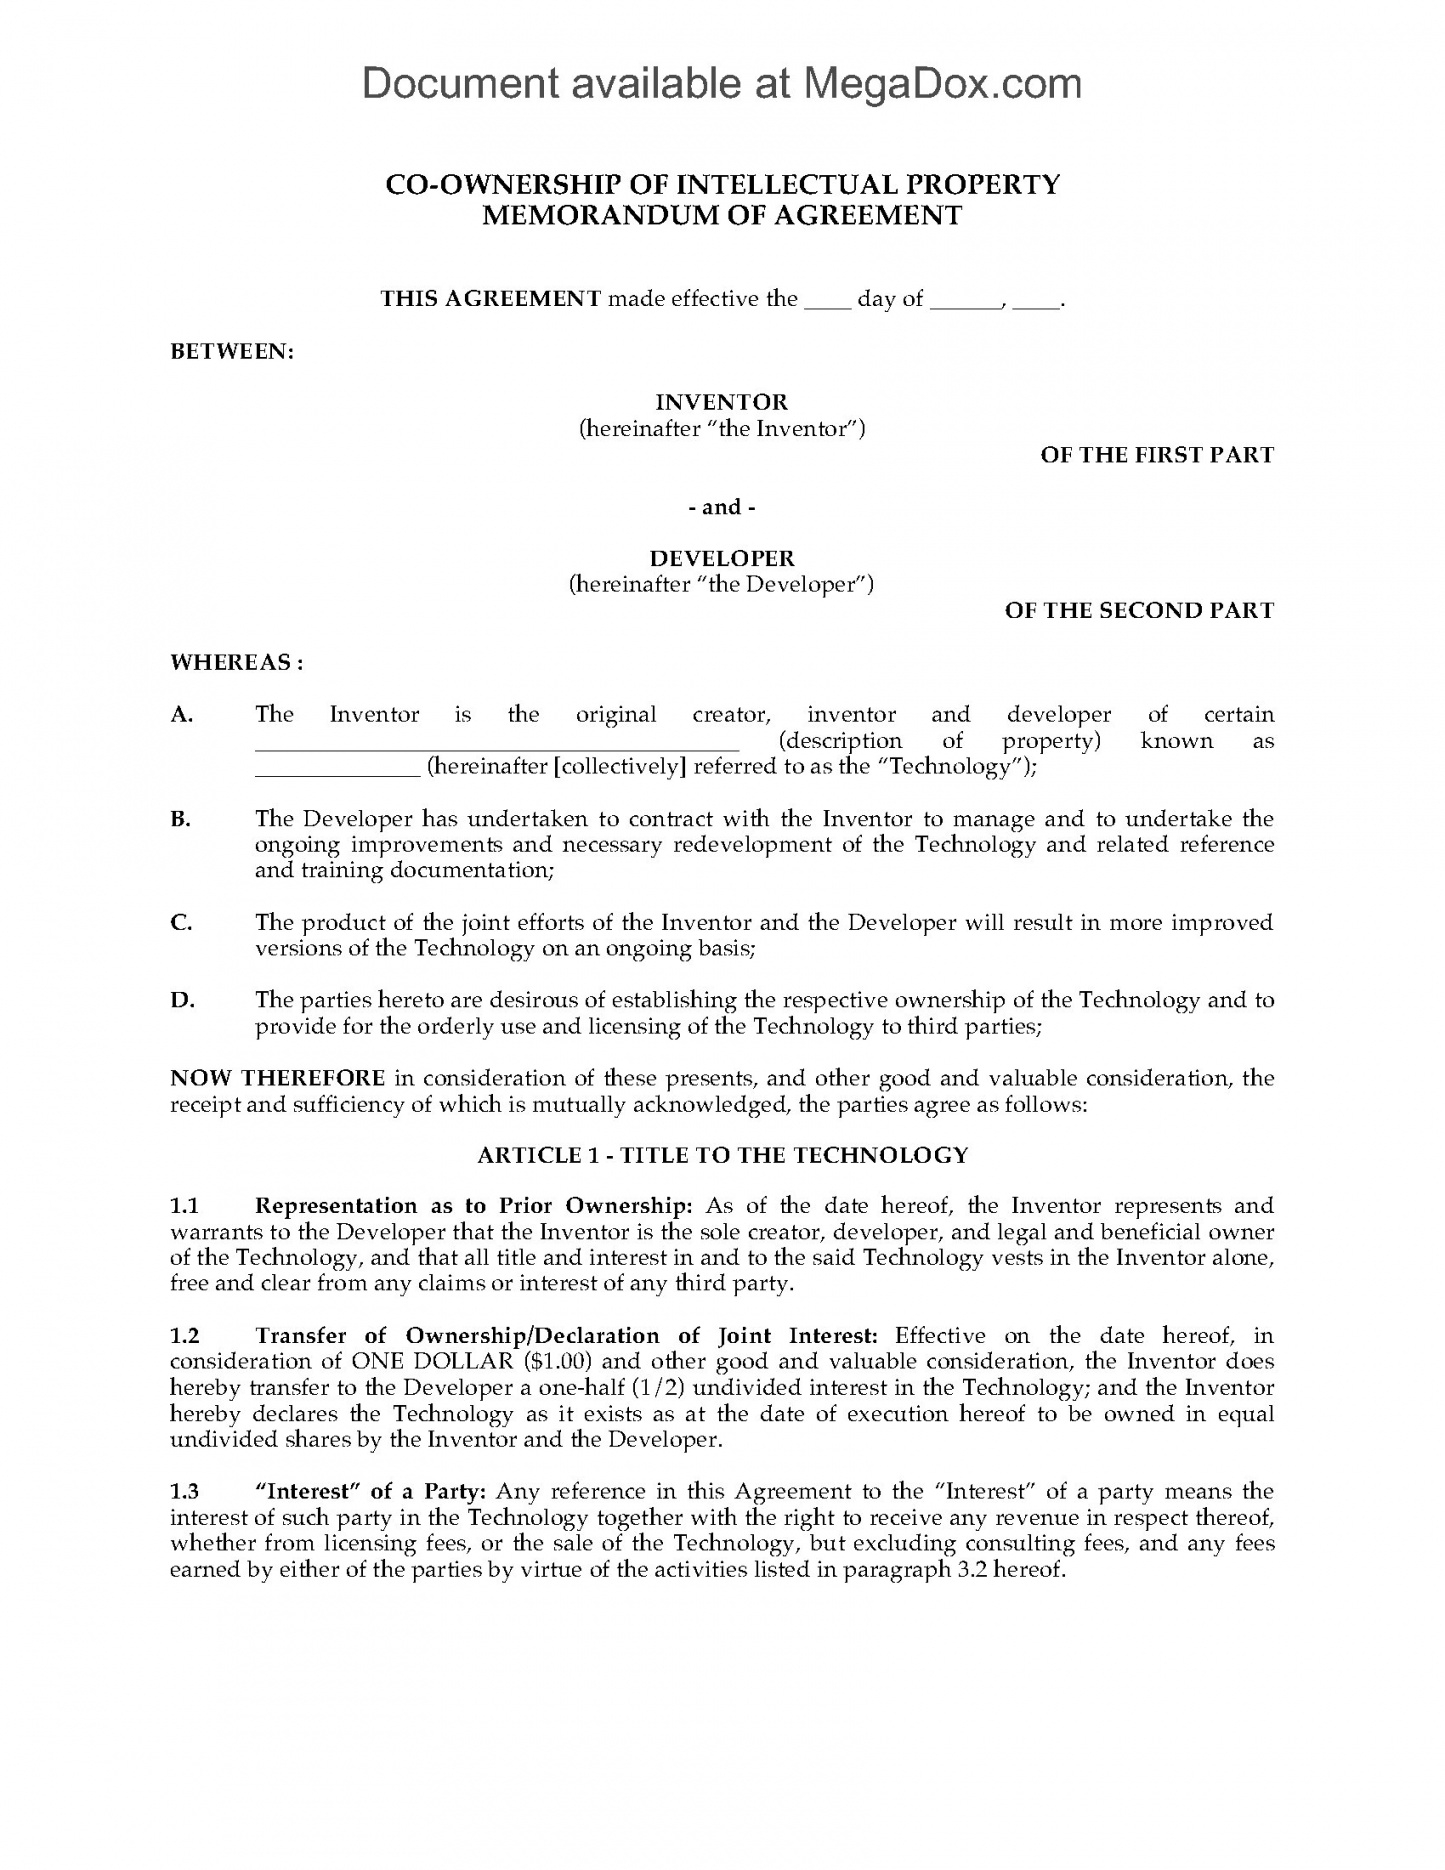 printable coownership agreement for intellectual property  legal forms and technology licensing agreement template example